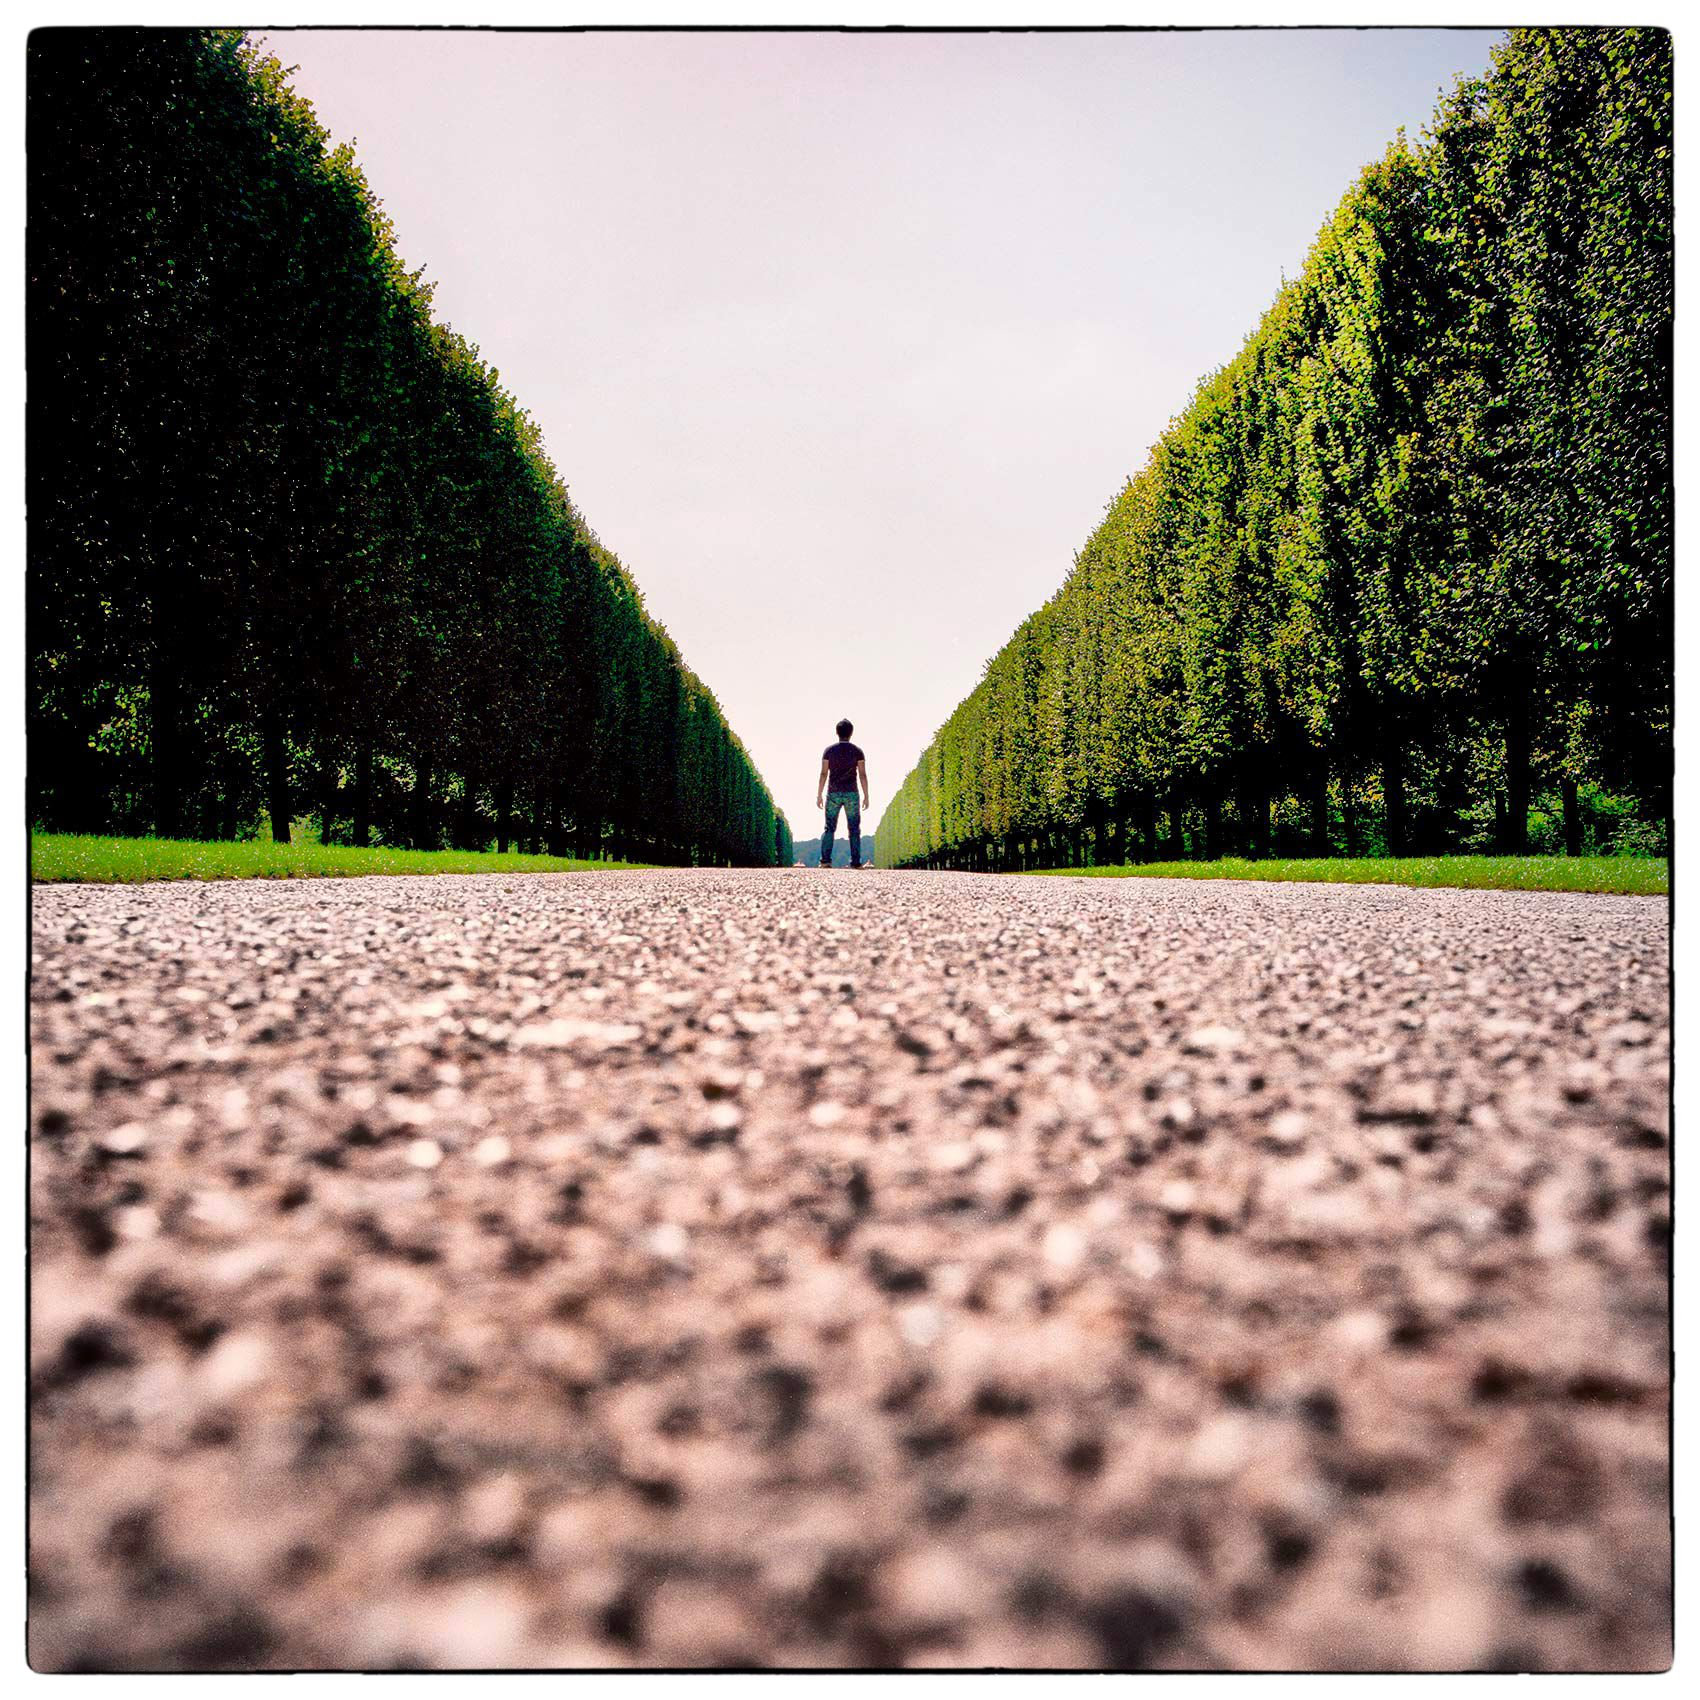 a-man-stands-in-the-middle-of-the-road-leading-to-chateau-de-versailles-francecopy